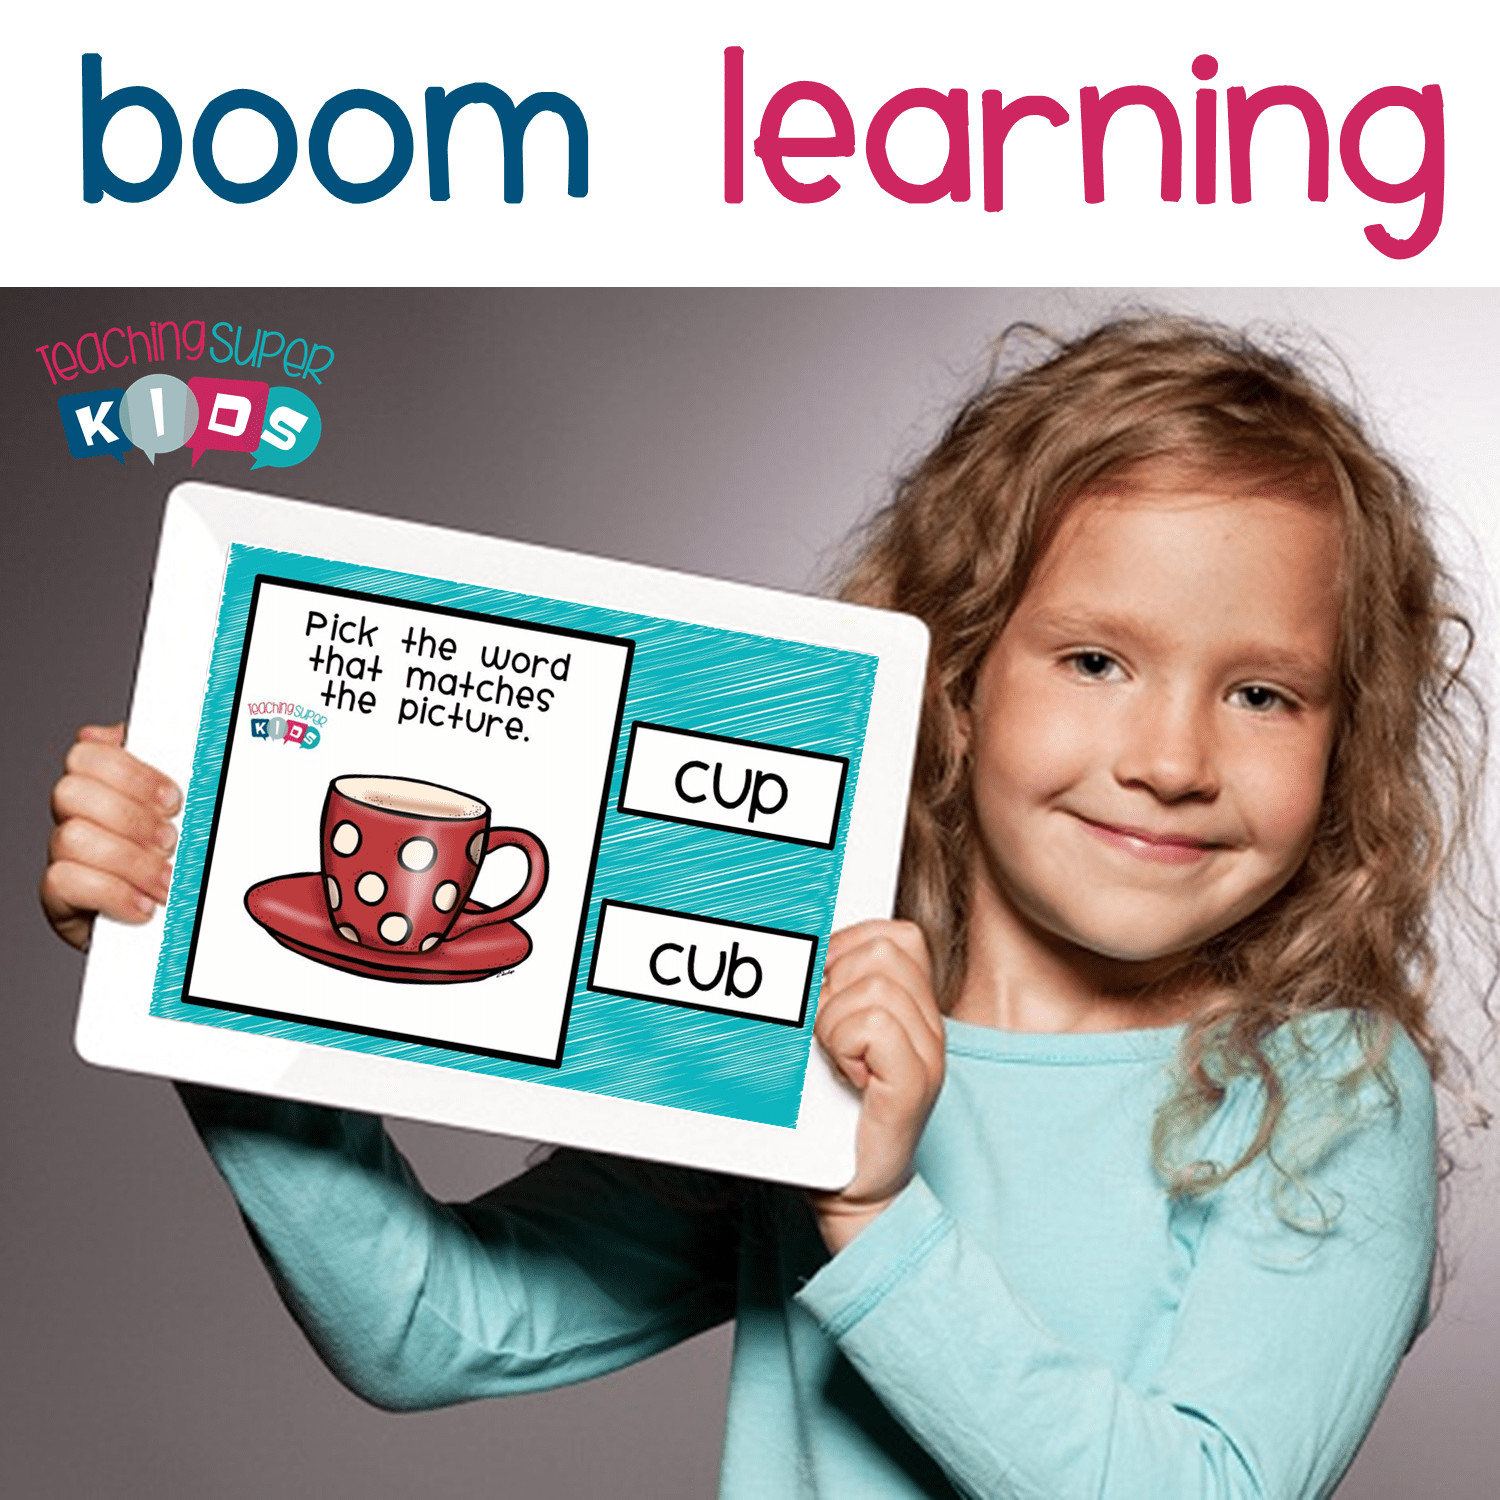 Going Digital with Boom Learning Part 1 - Teaching Superkids